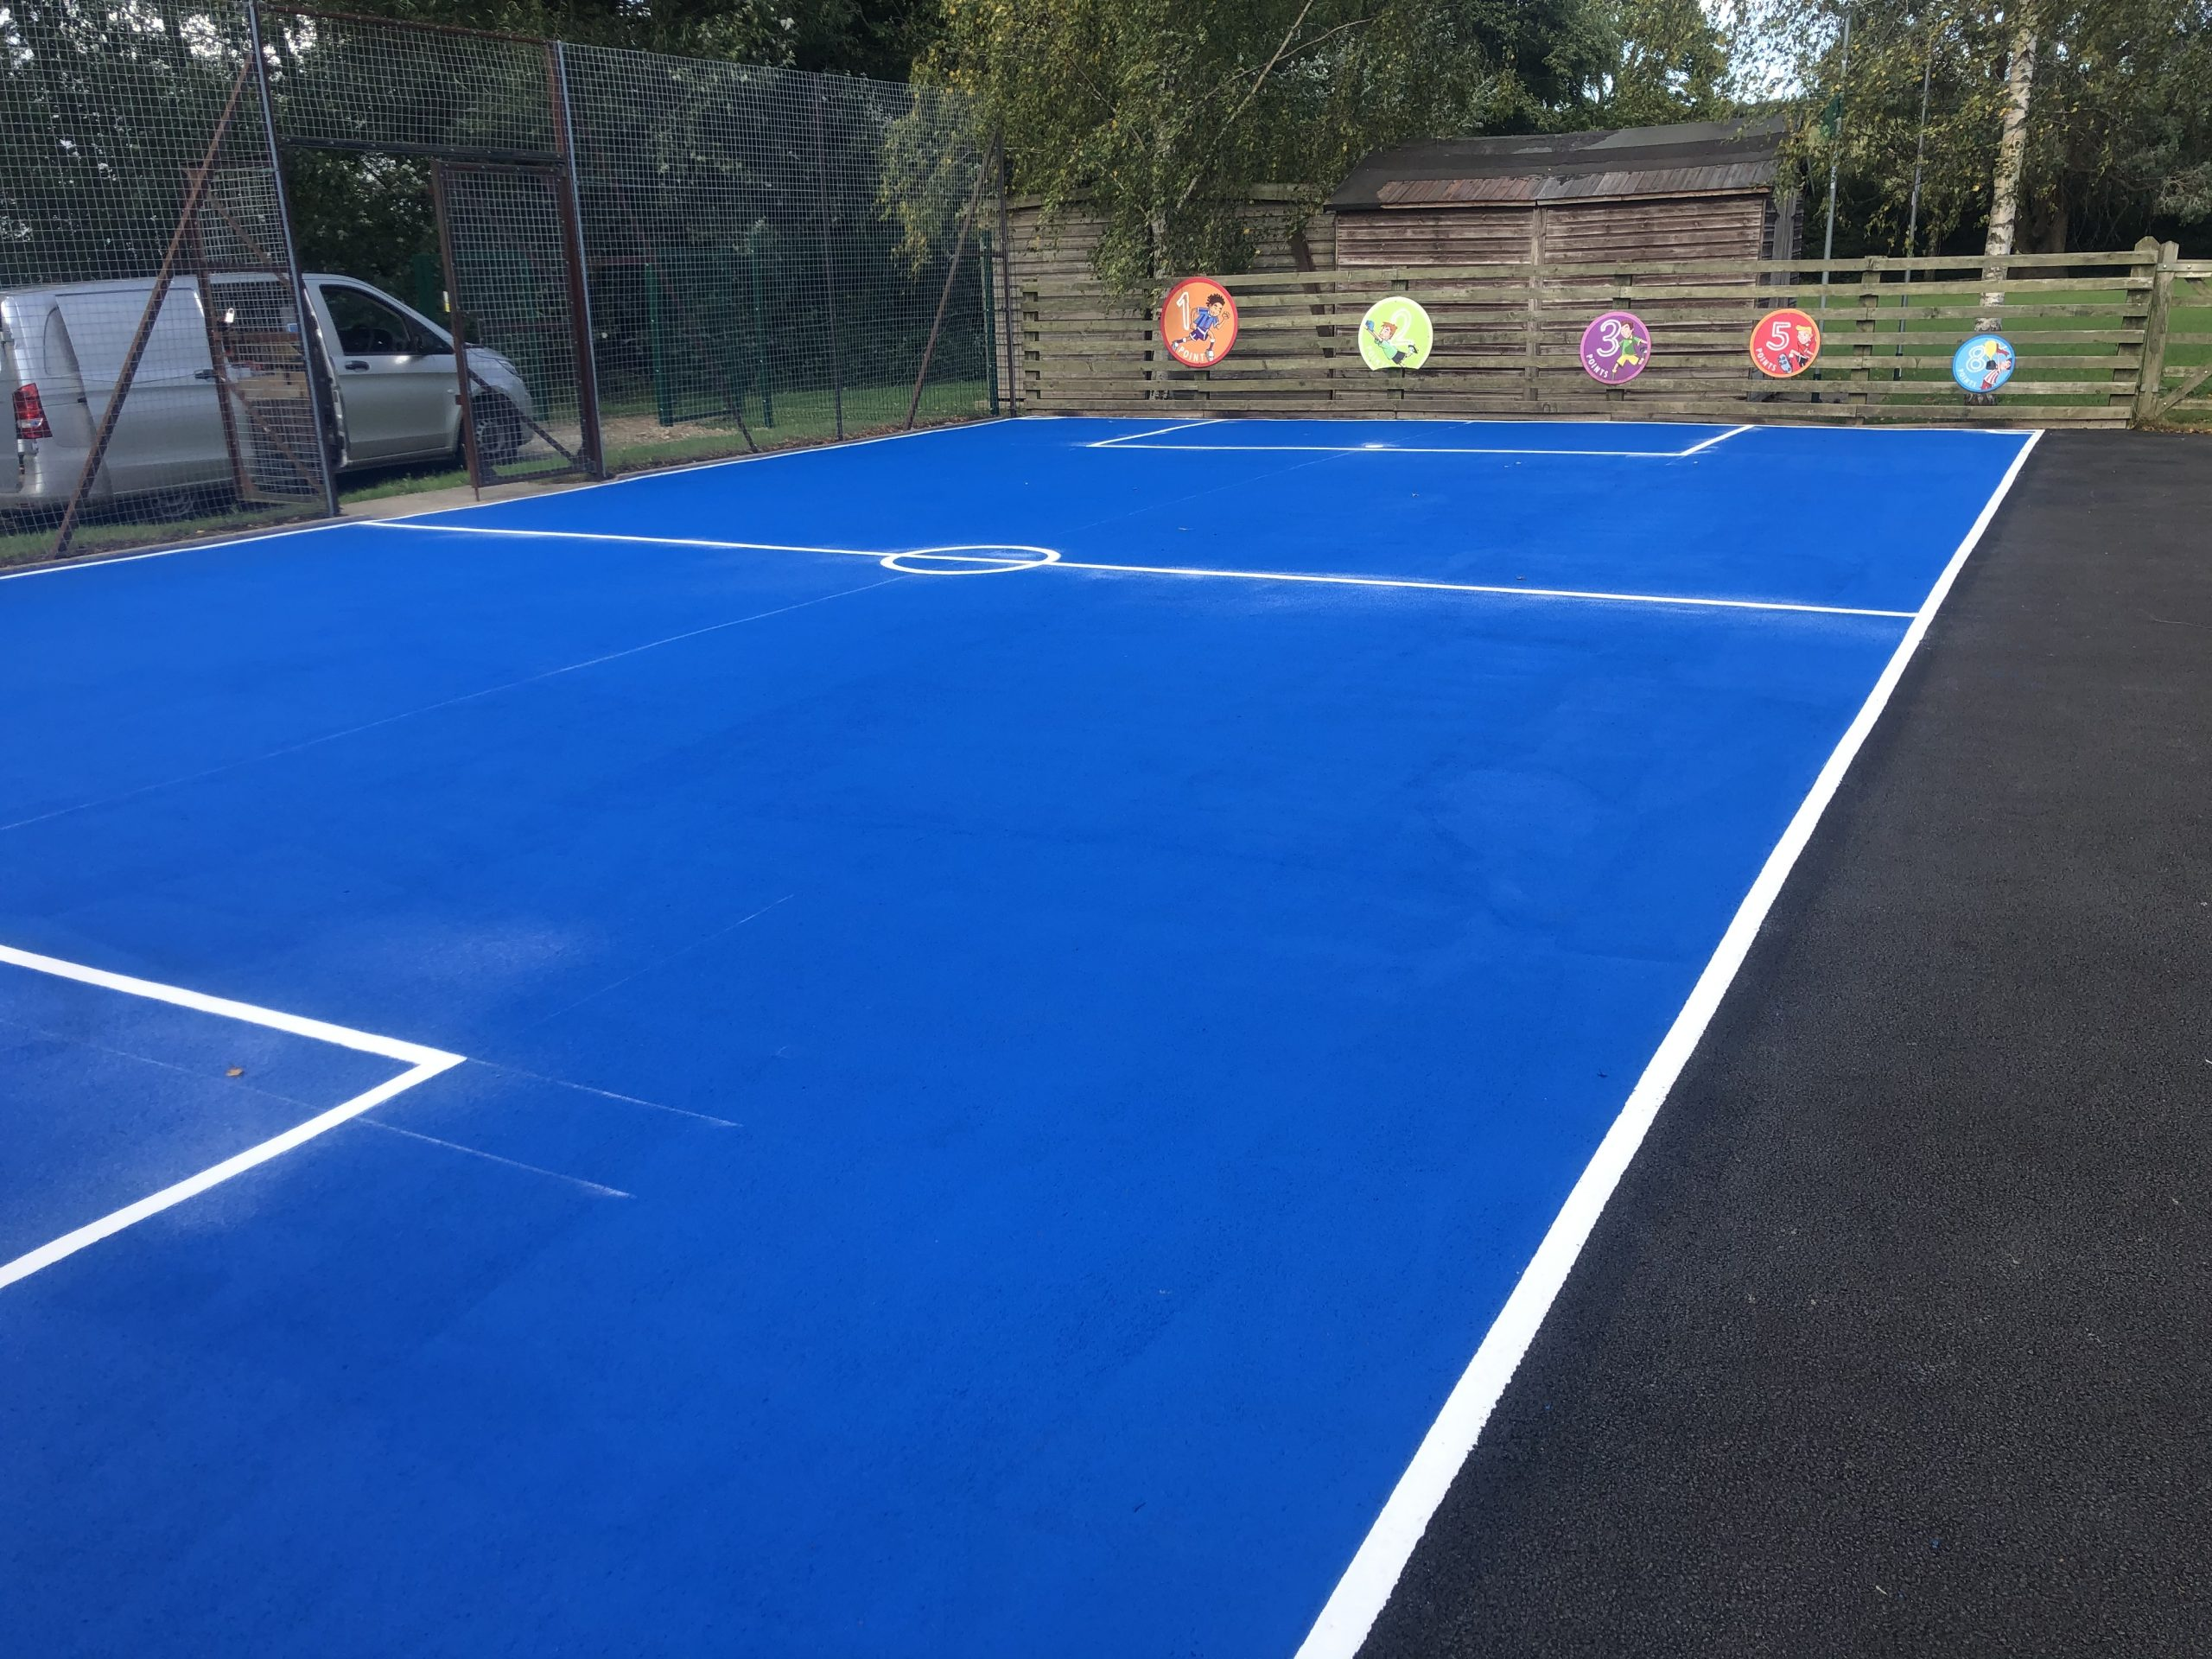 Creating a multi-functional playground with sports court markings